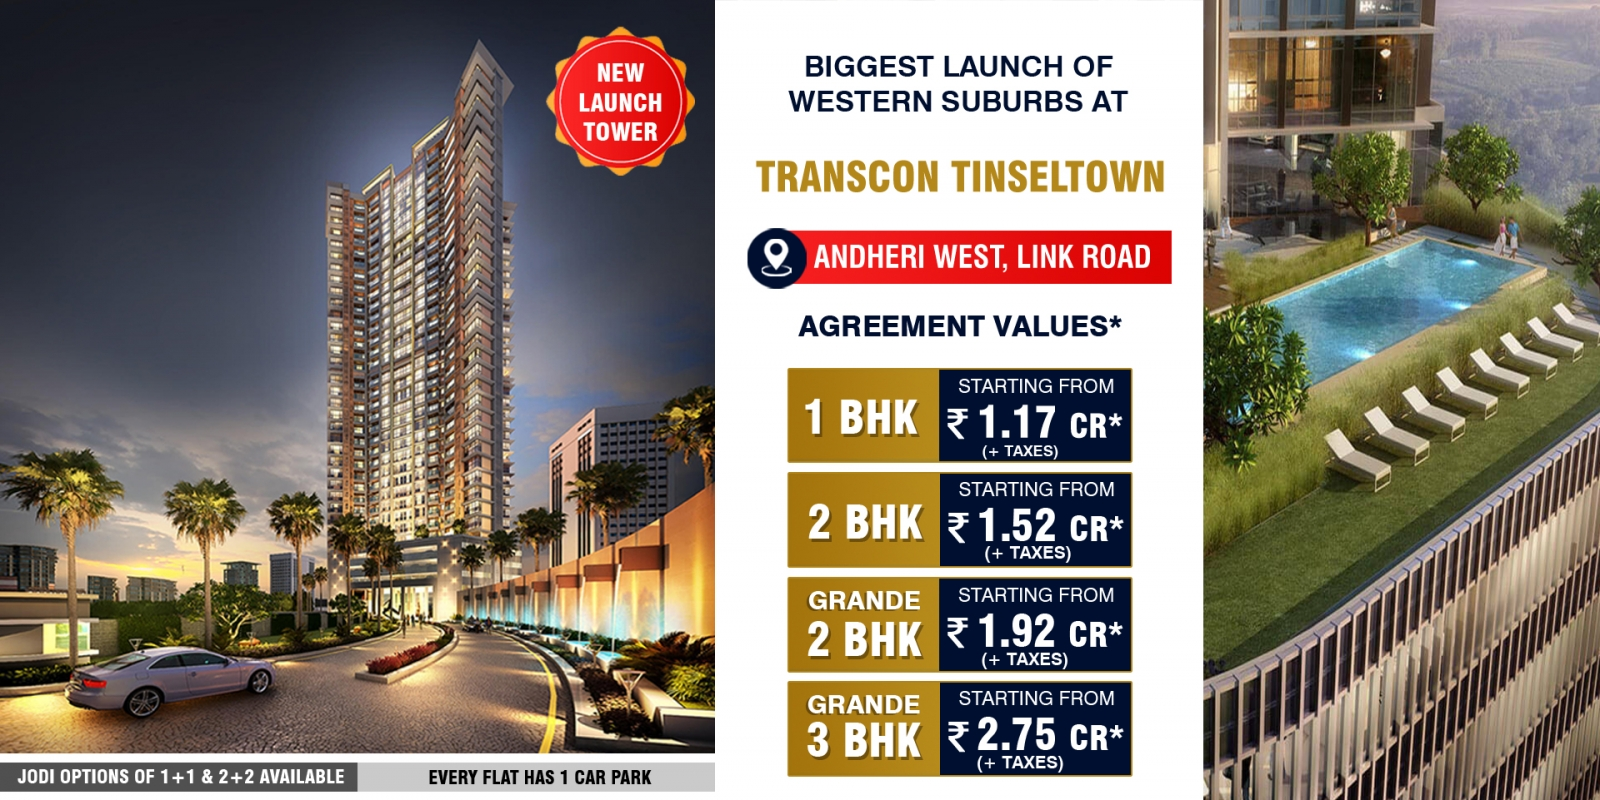 transcon tinseltown andheri west